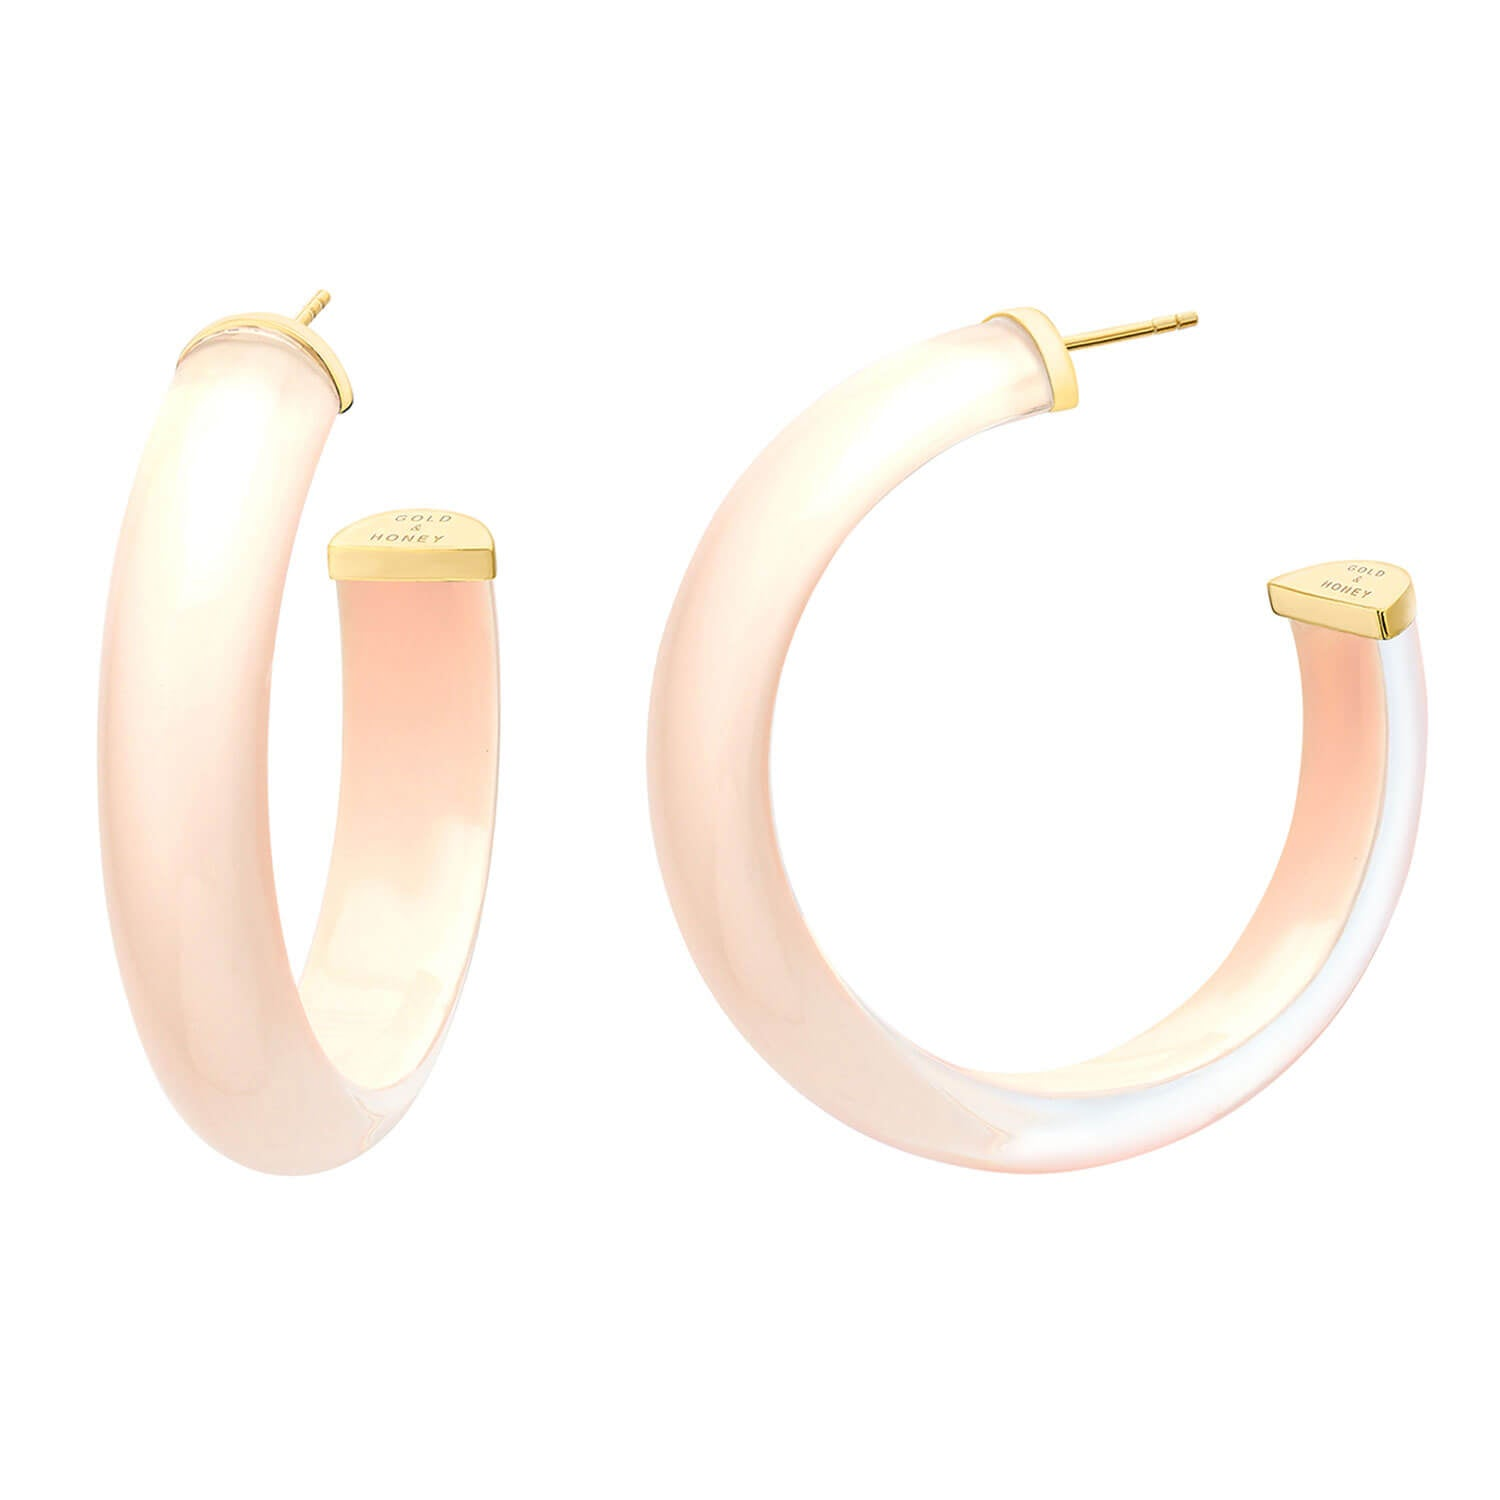 Medium Illusion Nude Lucite Hoops - #2